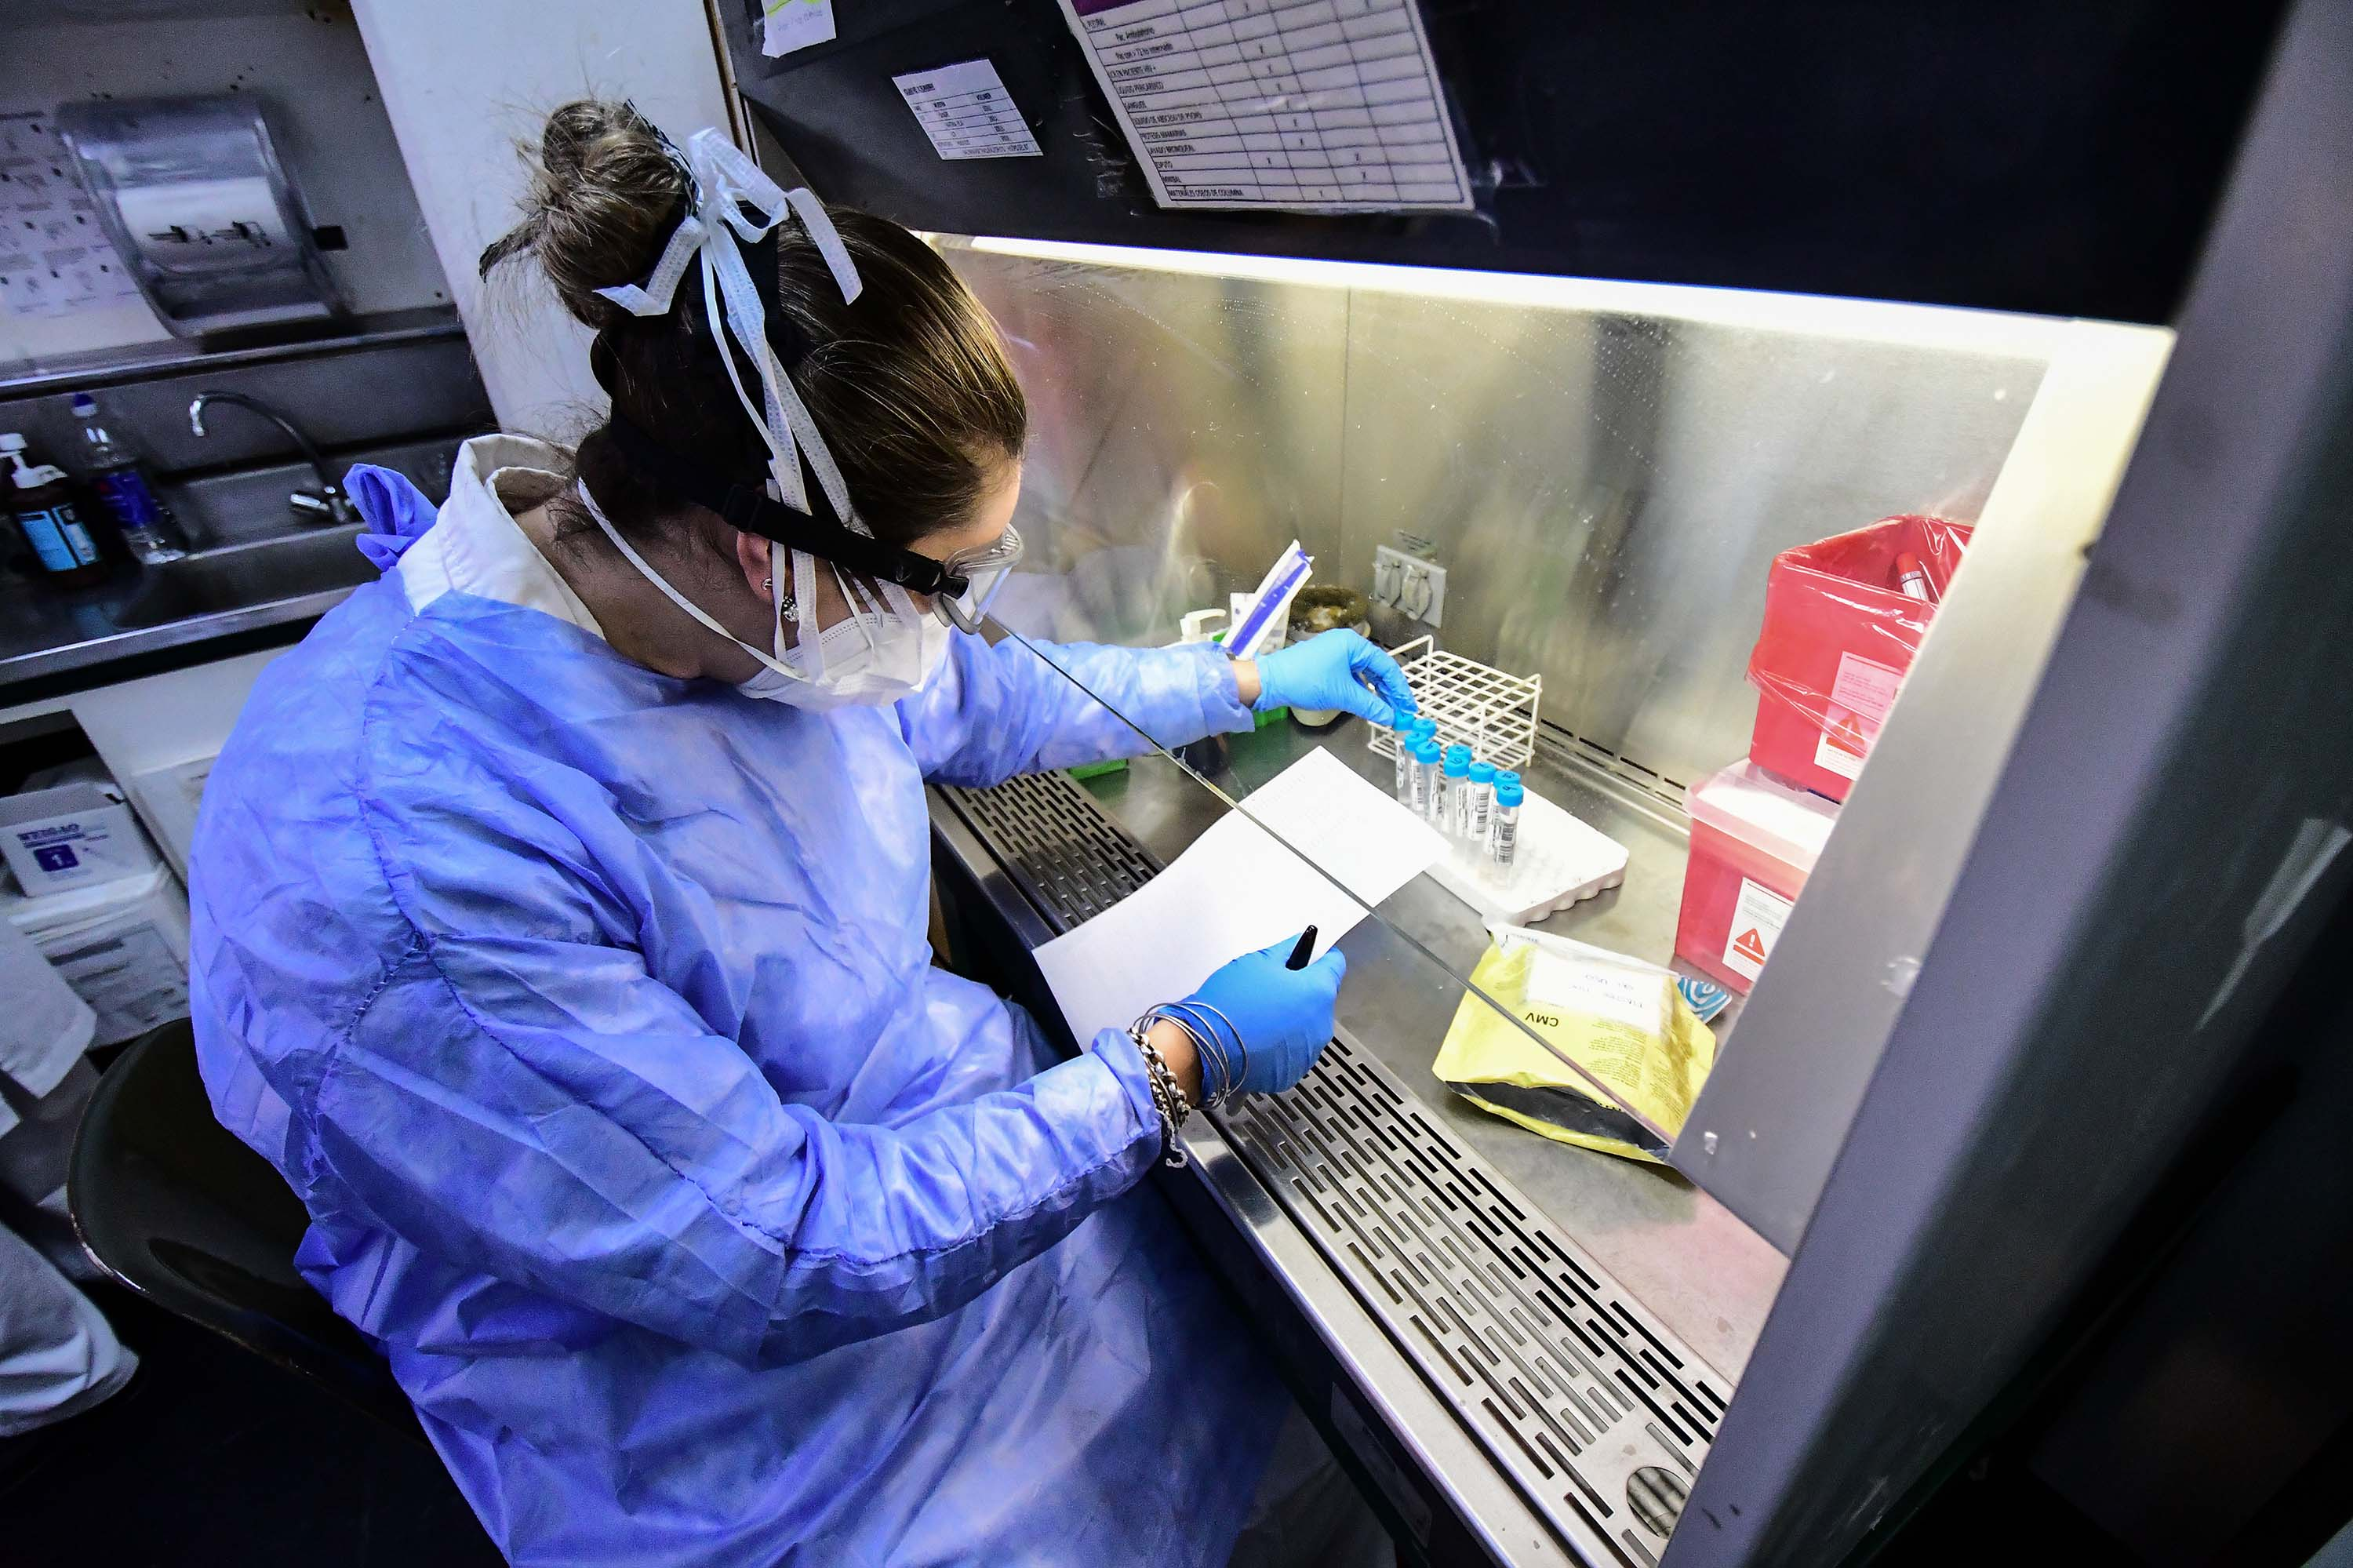 Guillermina Maglione manipulates swab samples to make a real time polymerase chain reaction analysis for COVID-19 testing at the biochemistry lab of Central Navy Hospital Dr. Pedro Malloon on April 28, in Buenos Aires, Argentina.